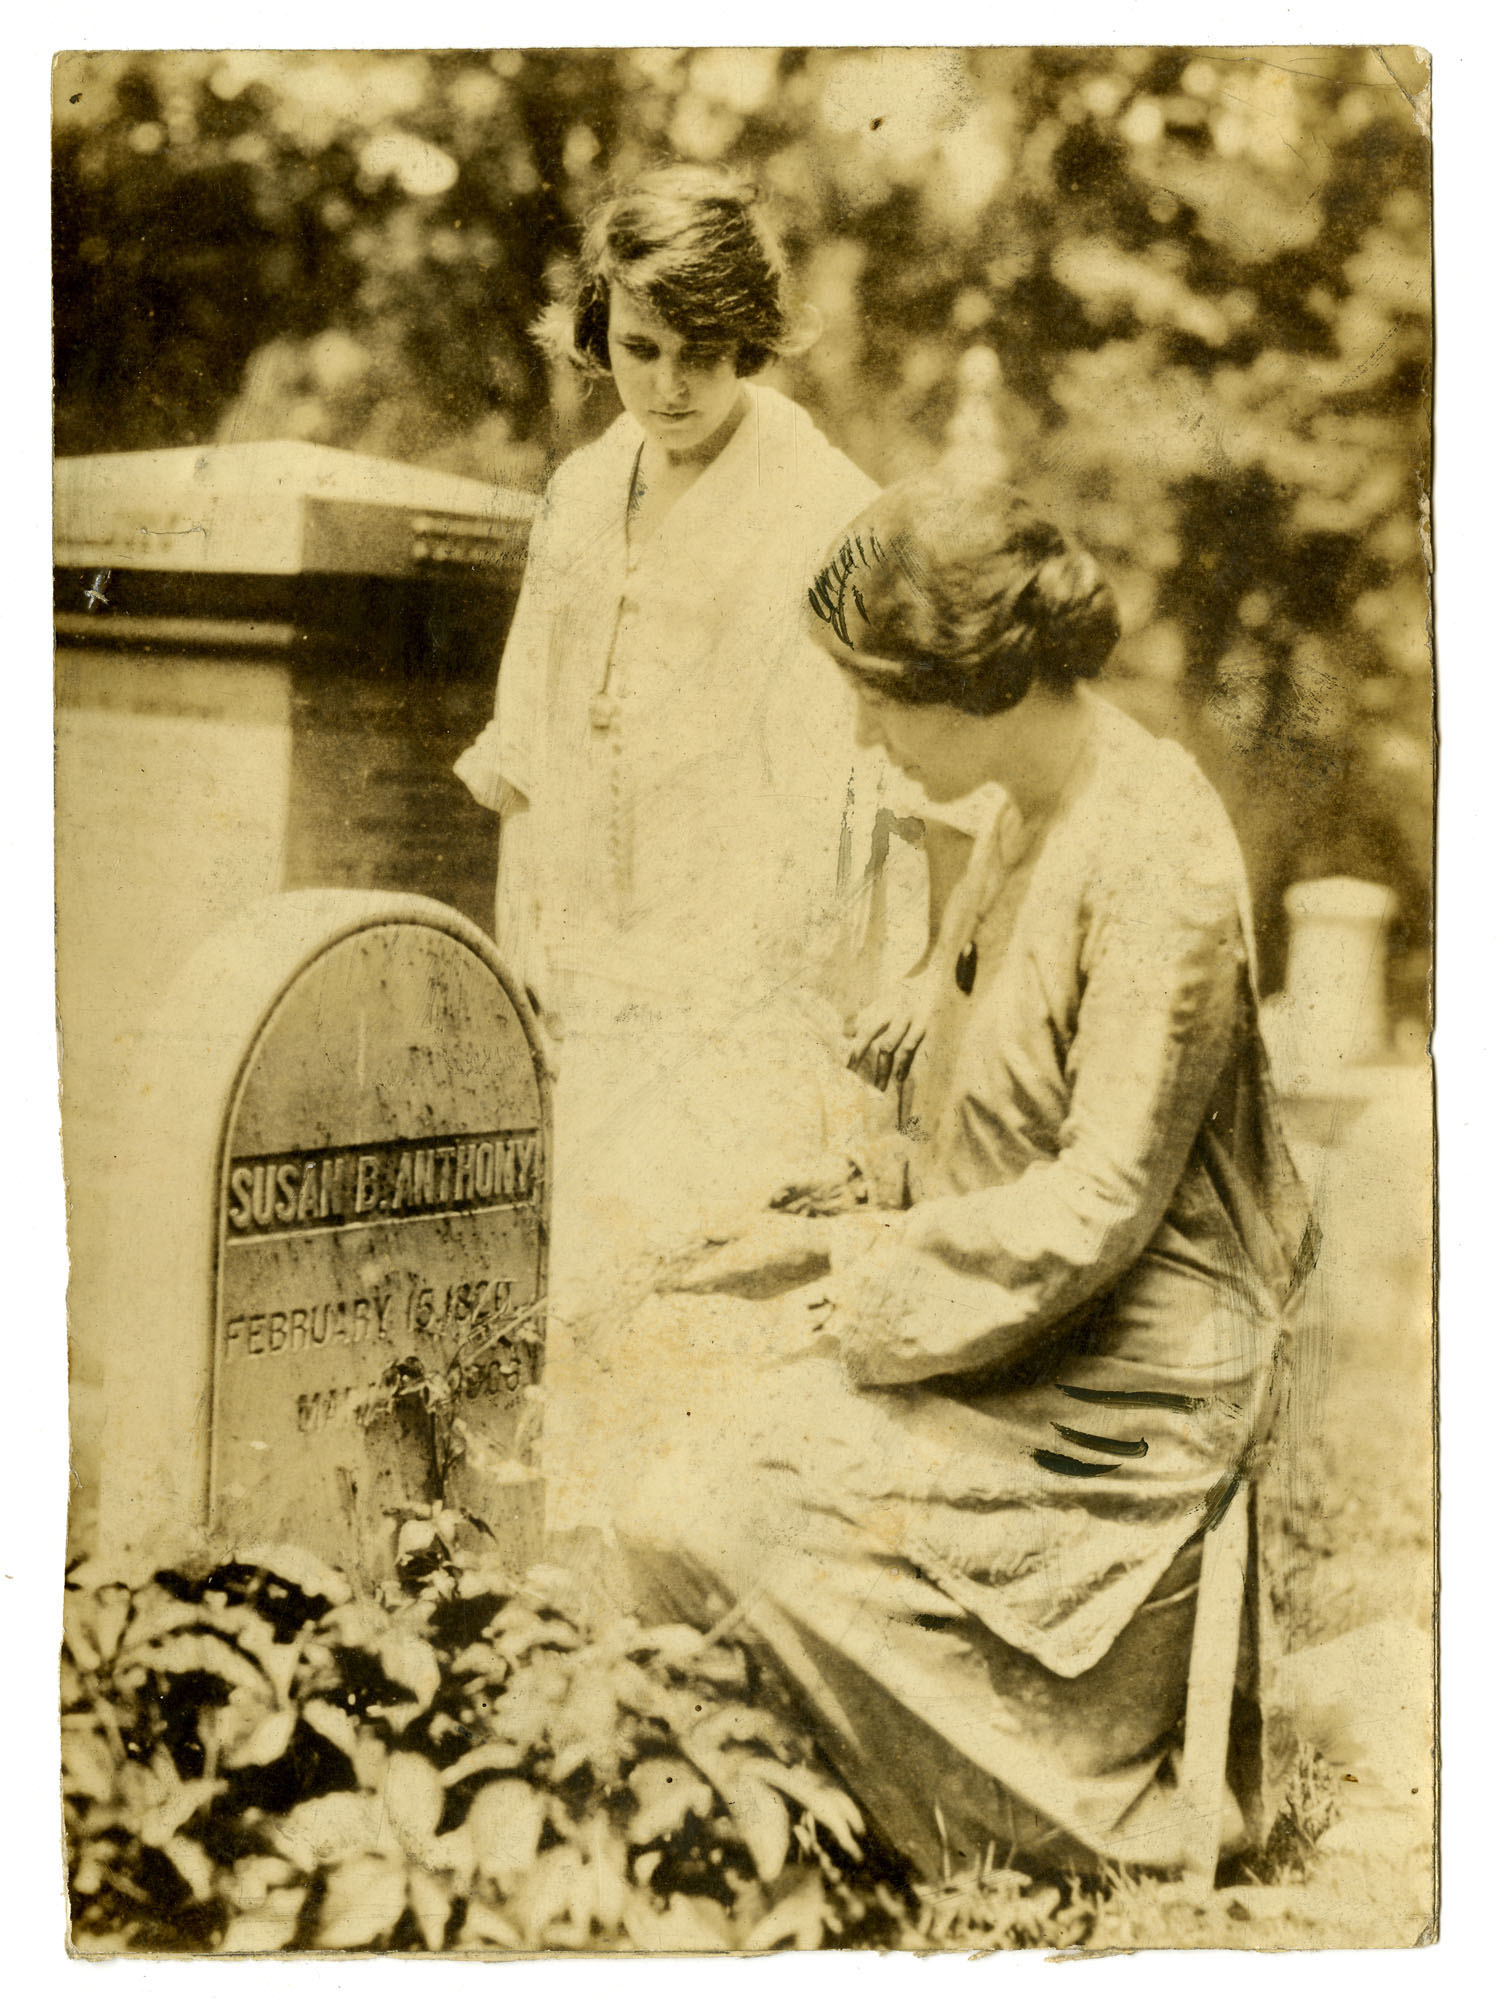 Alice Paul and Anita Pollitzer at Susan B. Anthony's grave